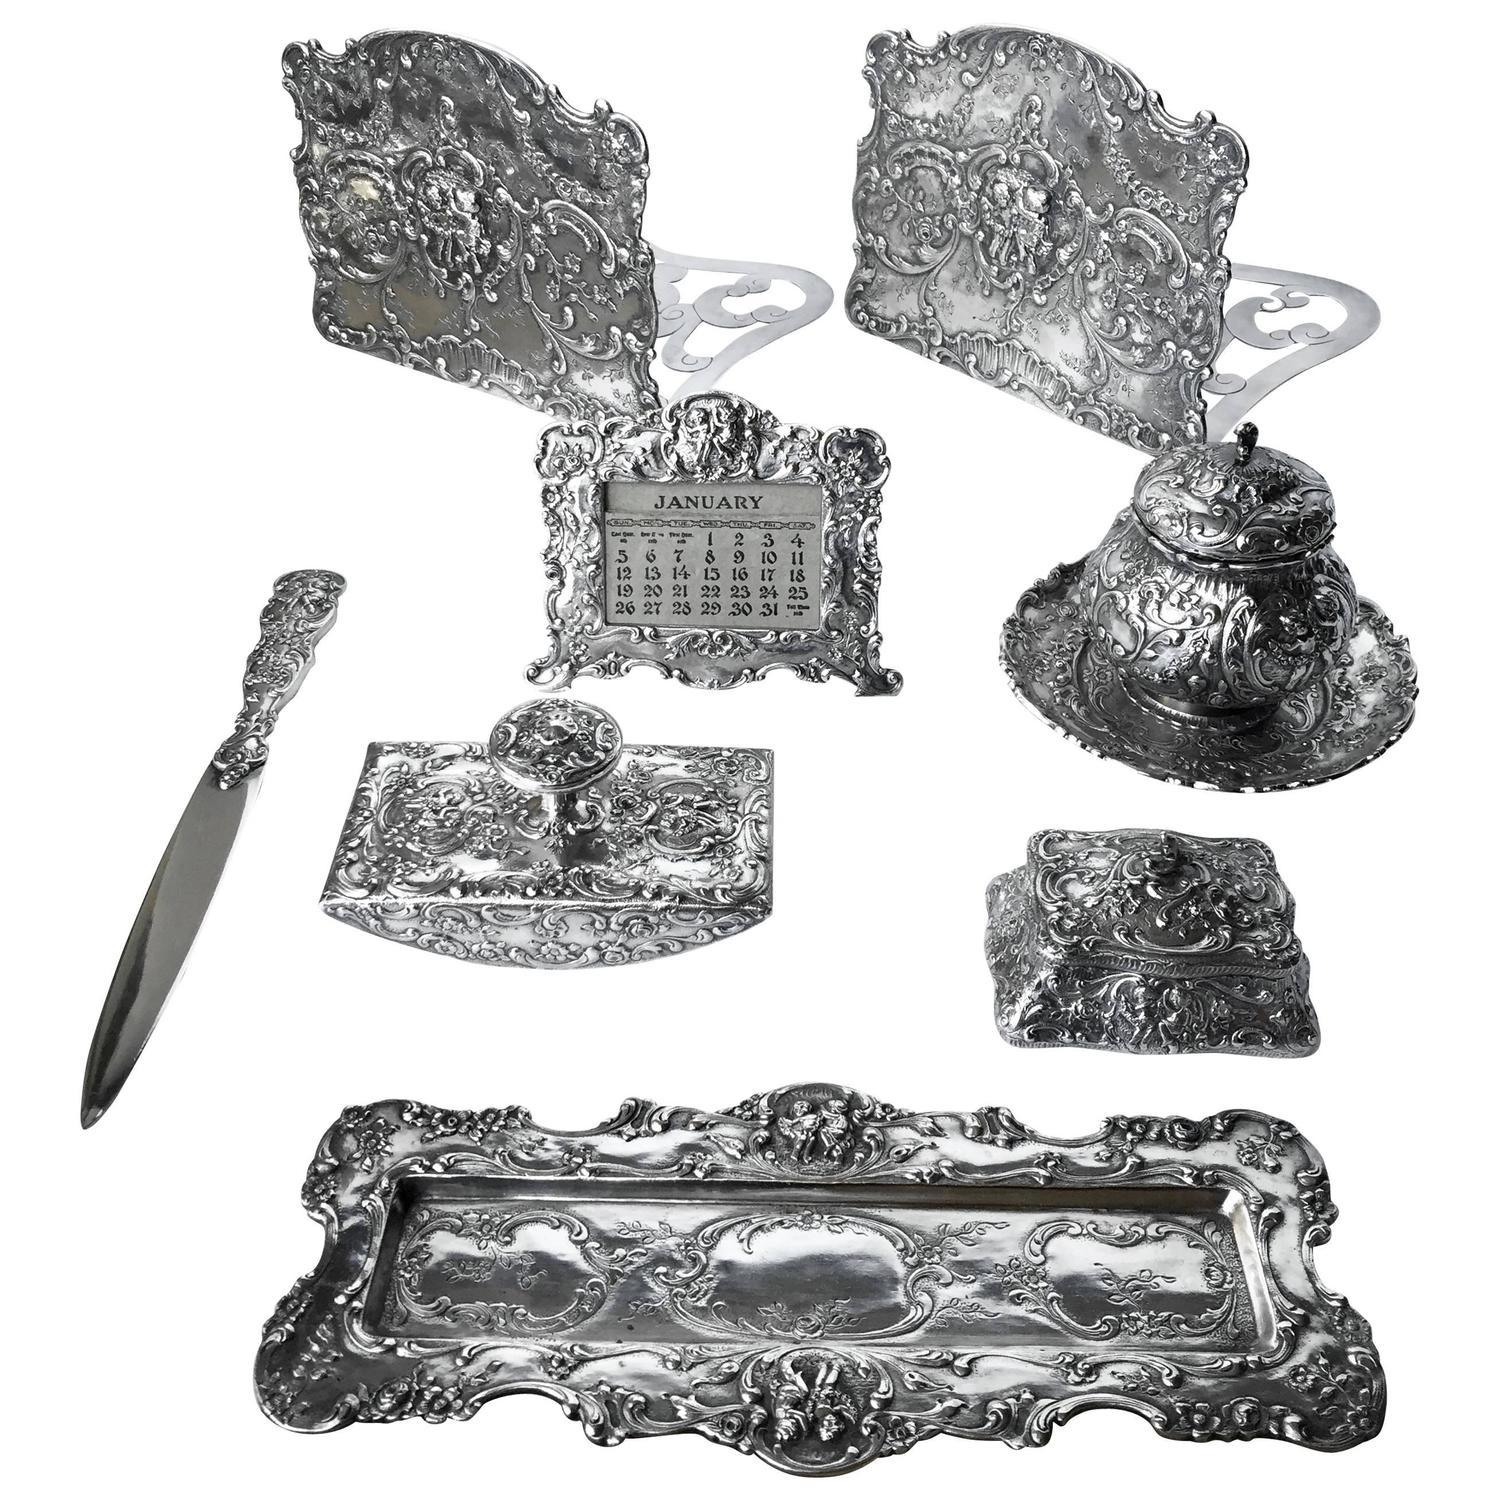 Marshall Fields Furniture: Fantastic And Complete Sterling Desk Set By Marshall